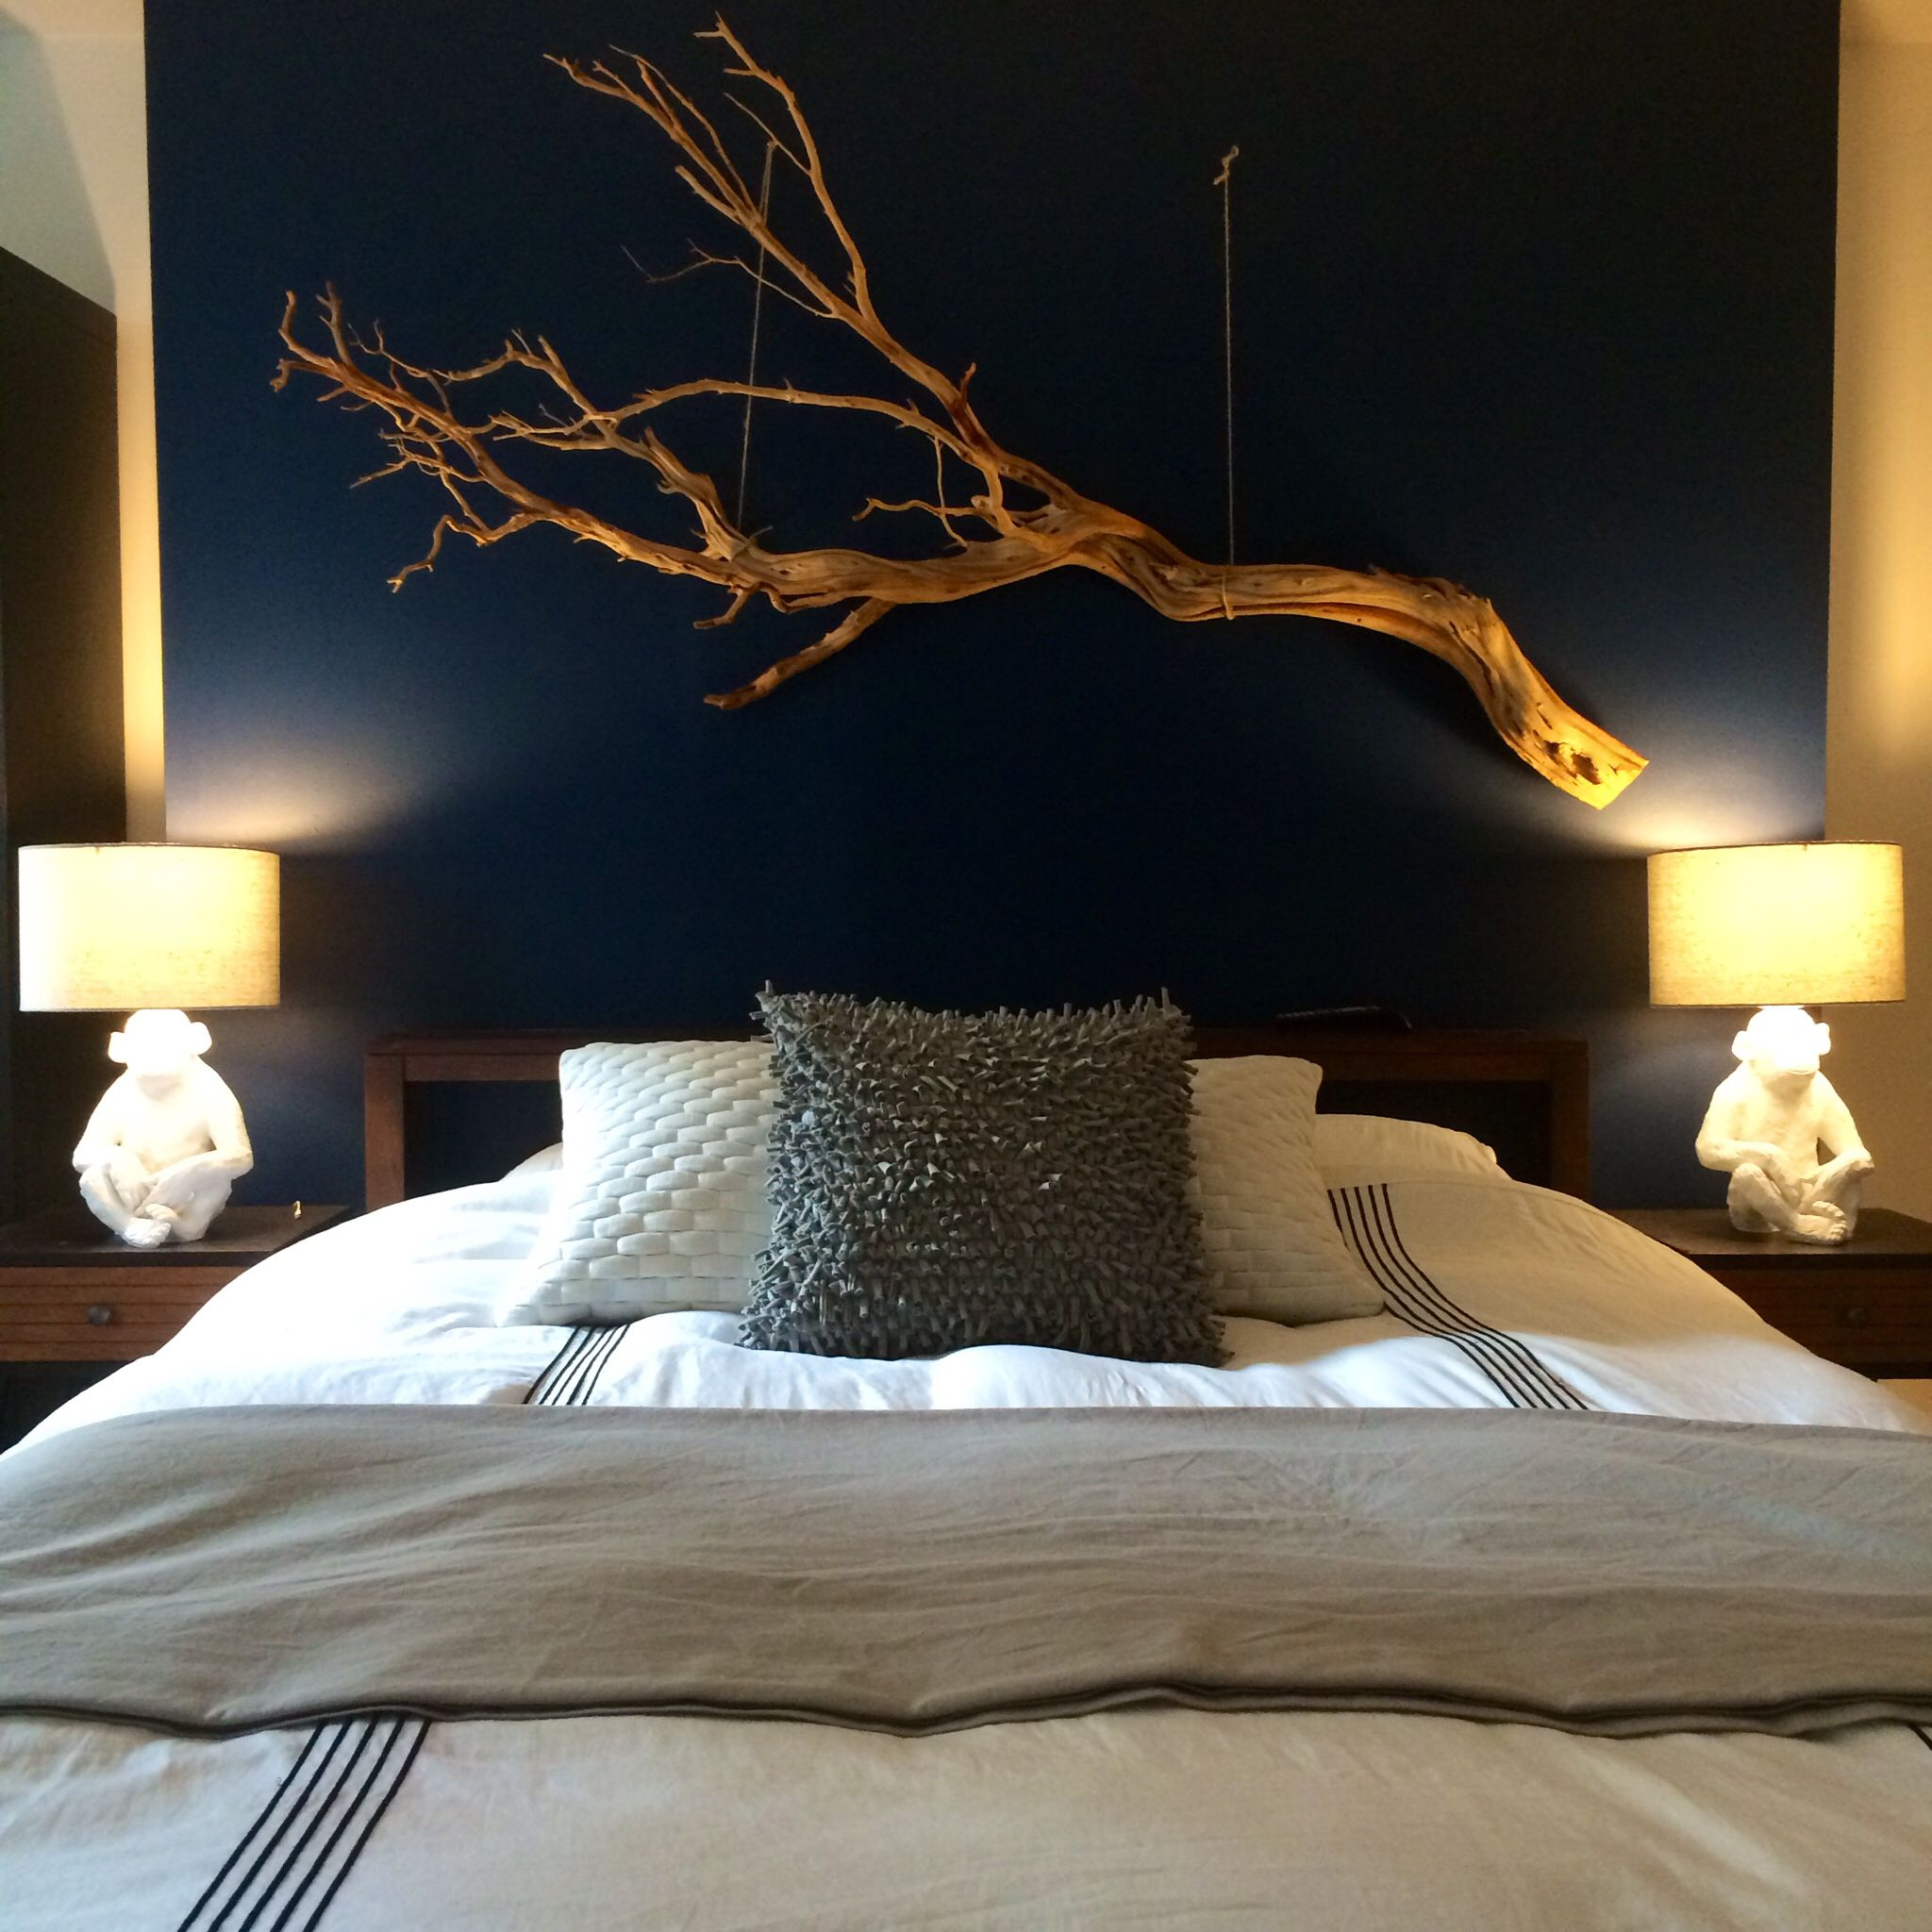 driftwood art over bed renos pinterest driftwood tree branch decor and branch decor. Black Bedroom Furniture Sets. Home Design Ideas